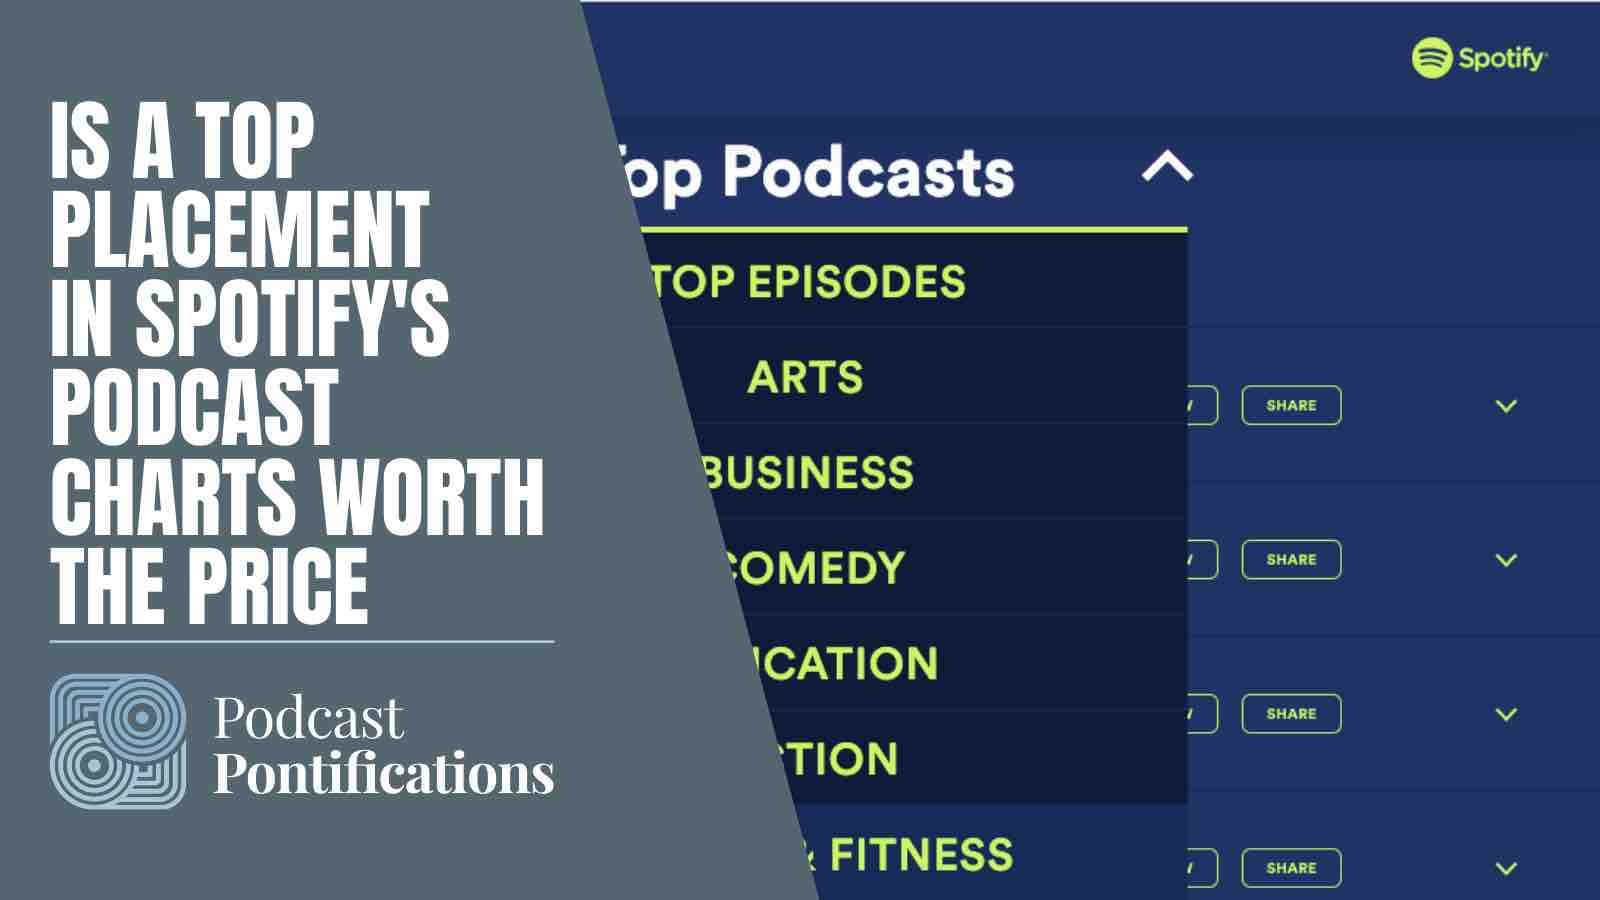 Is A Top Placement In Spotify's Podcast Charts Worth The Price?